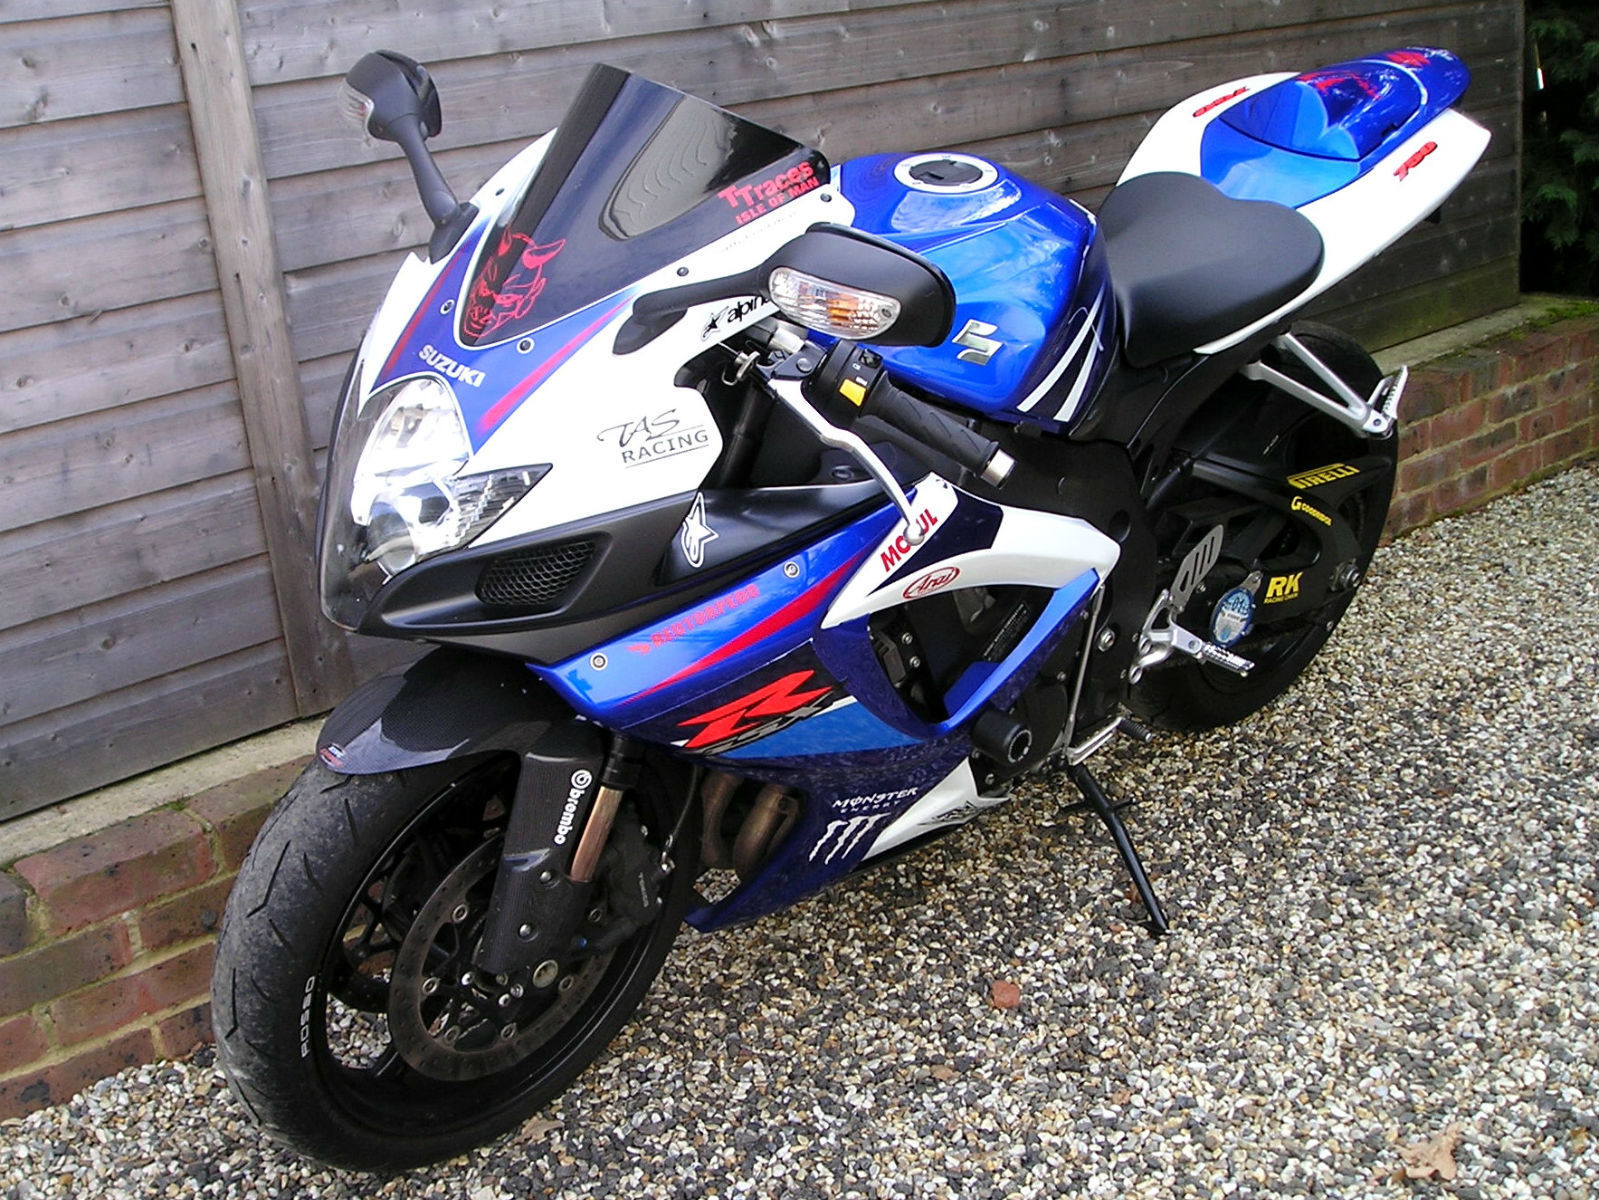 suzuki gsx r 750 k7 nice options fitted with akrapovic stubby exhaust 07 reg. Black Bedroom Furniture Sets. Home Design Ideas